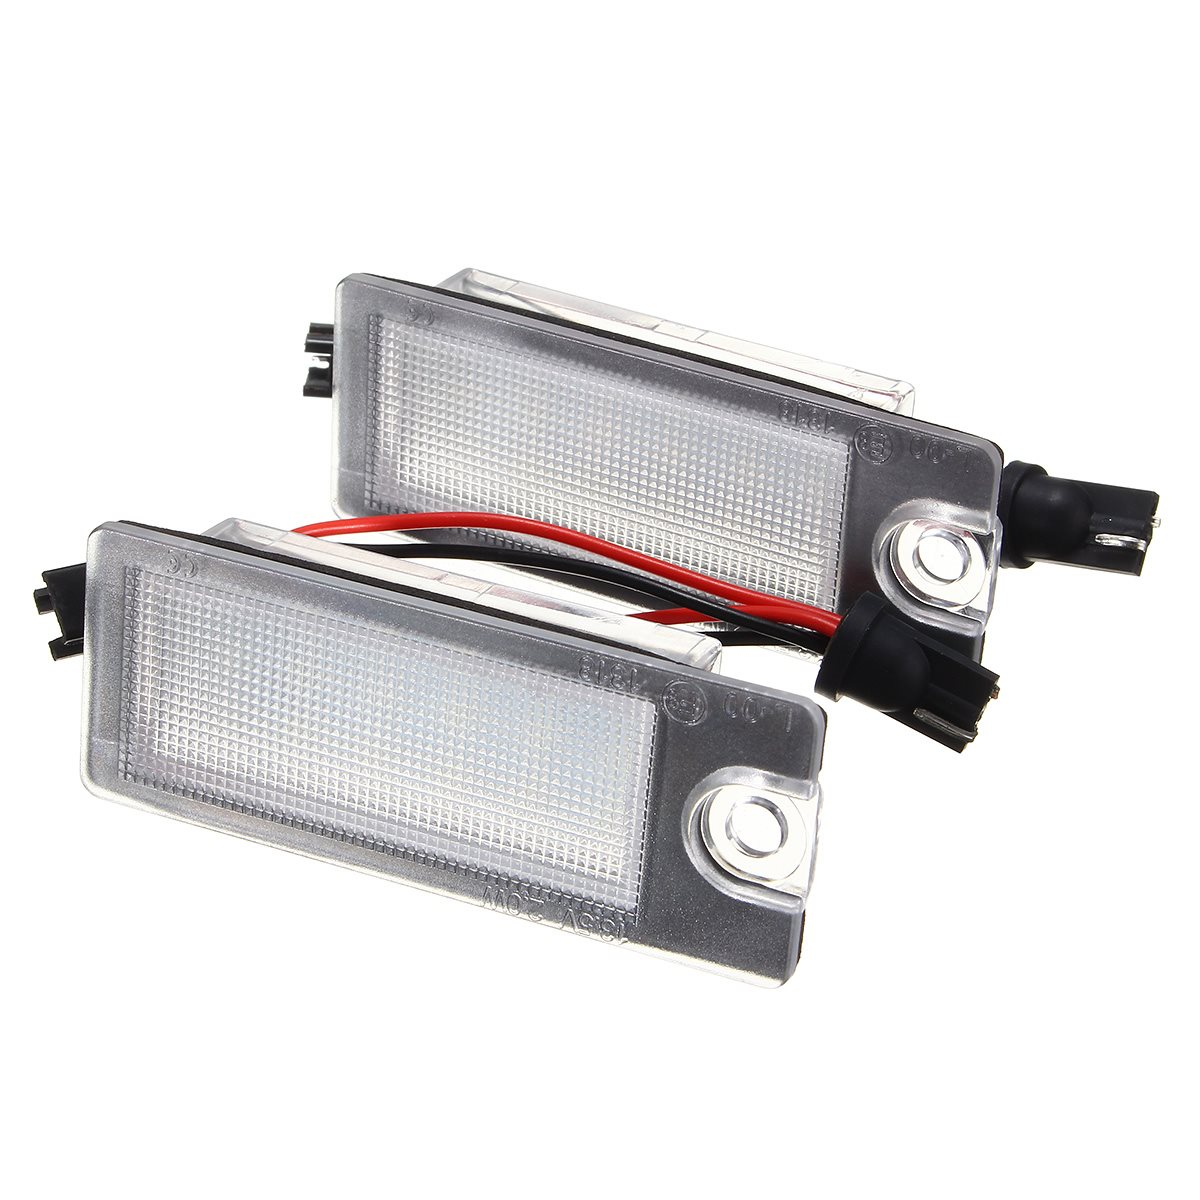 2Pcs Car 18 LED License Plate Light White Number Plate Lamp For Volvo S80 99-06 V70 XC70 S60 XC90 Accessories hopstyling 2pcs direct fit white 18 smd car led license plate light lamp for nissan teana j31 j32 maxima cefiro number light